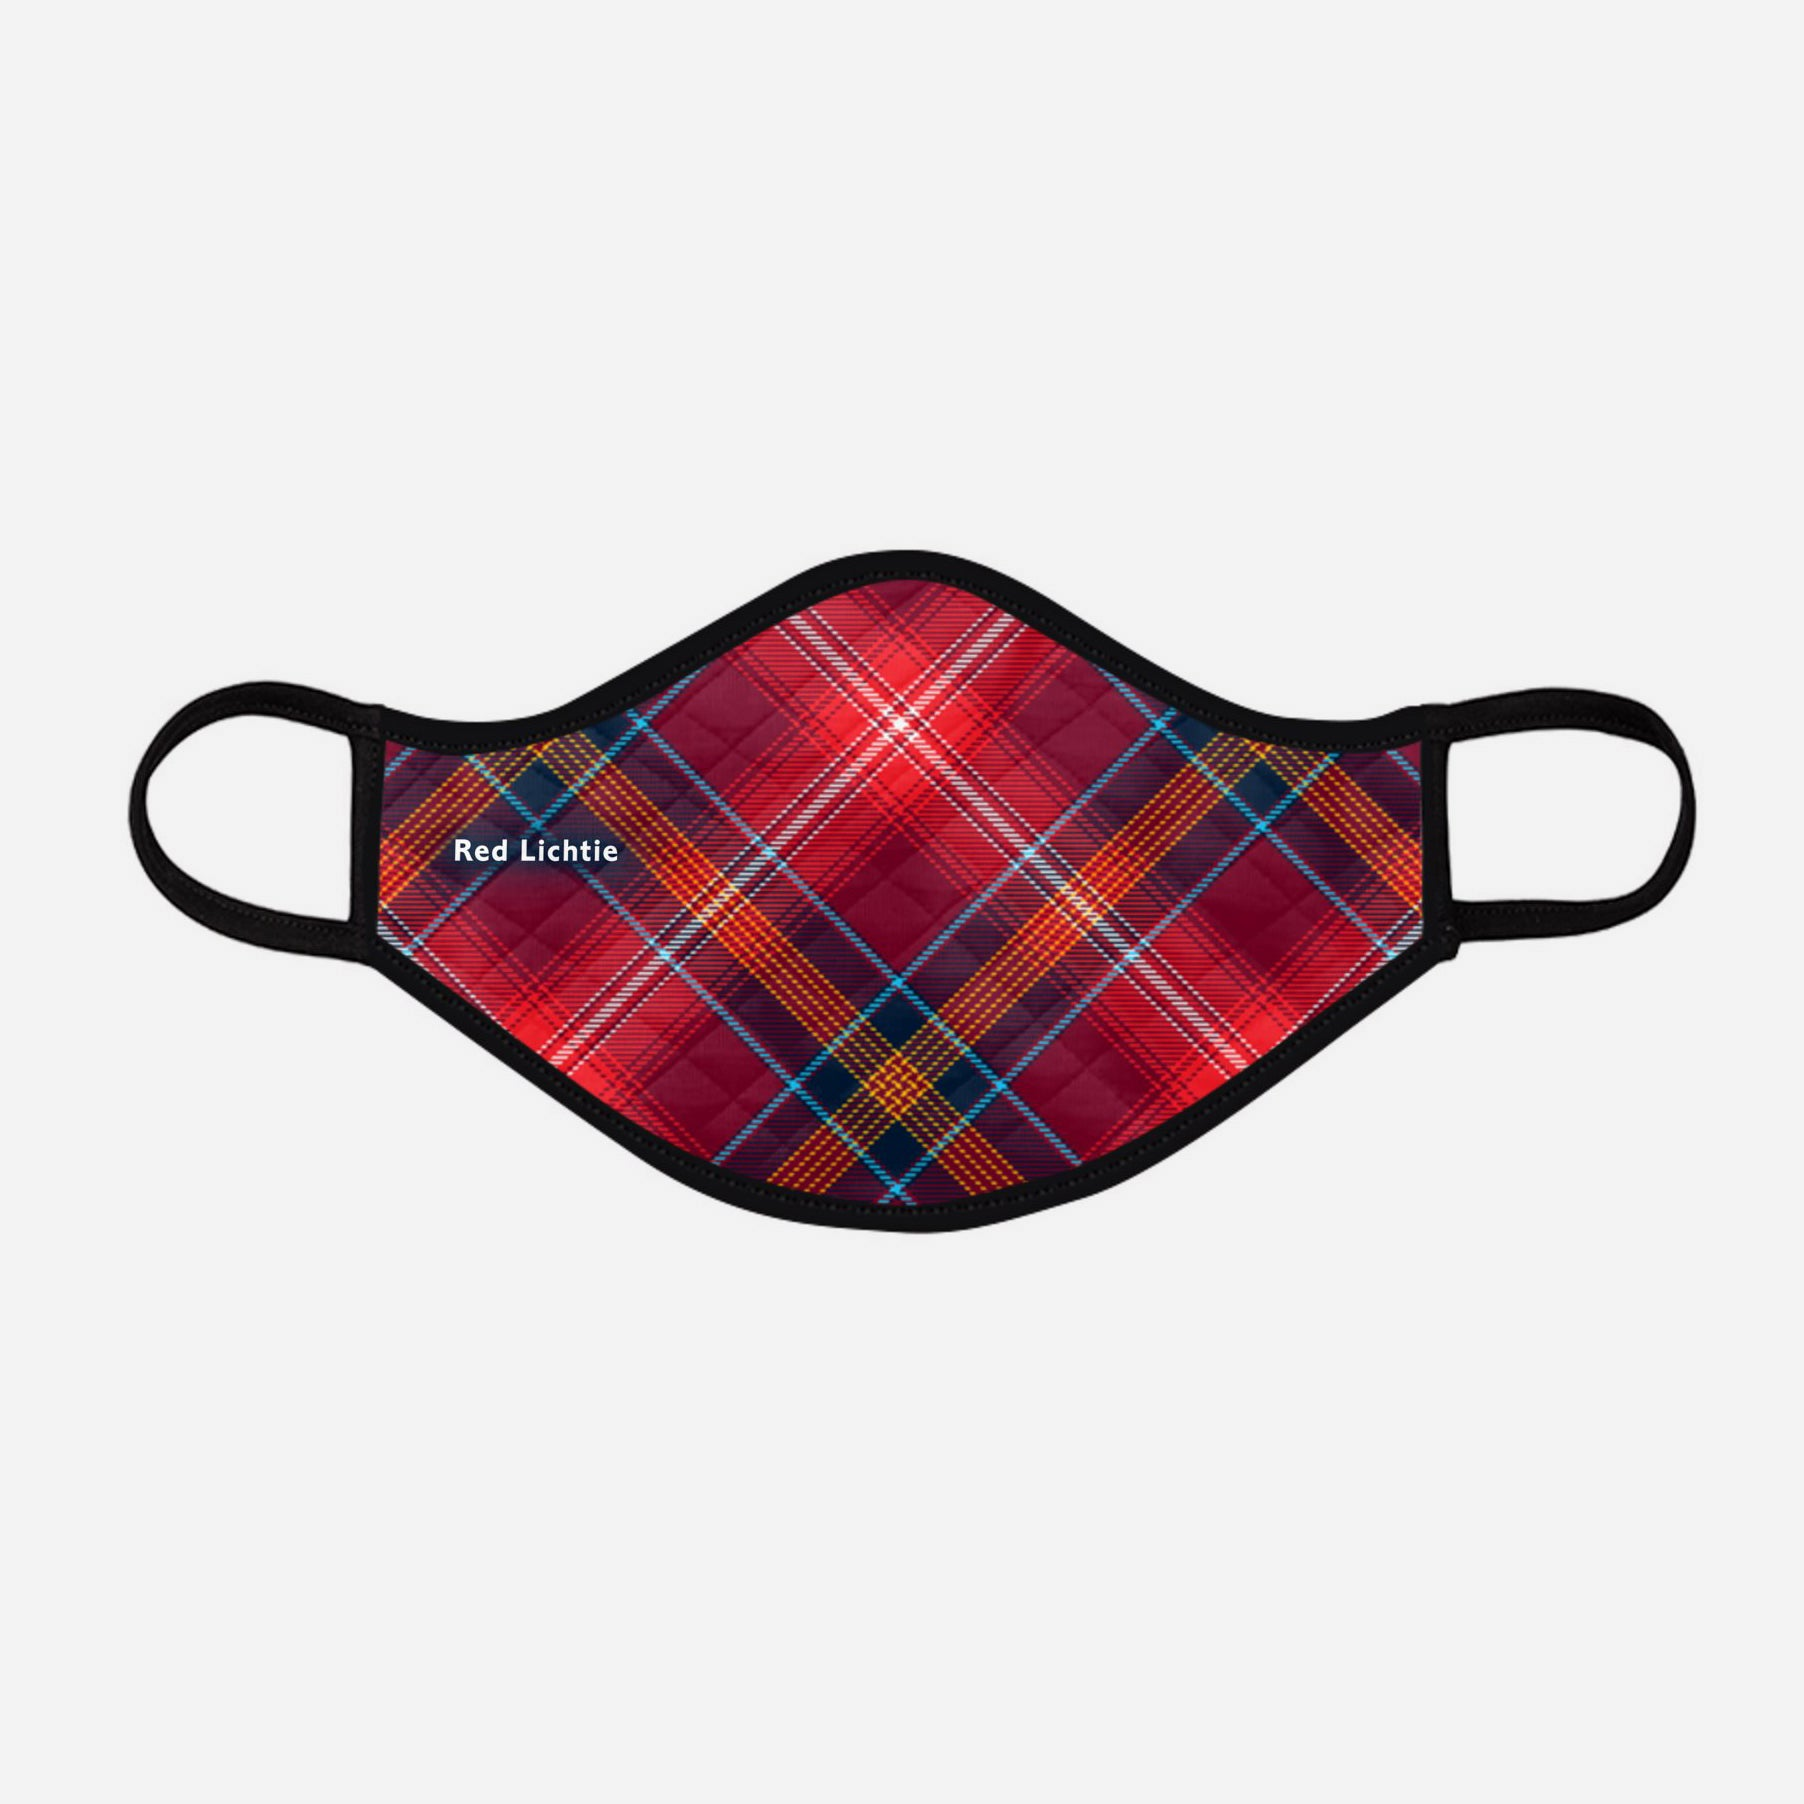 Red Reid Lichtie Lichties Tartan custom printed face mask - Large with badge - by the Steven Patrick Sim Tartan Artisan - Stevie Tartan Guy Arbroath, Scotland - mixed pack of 4 or 2